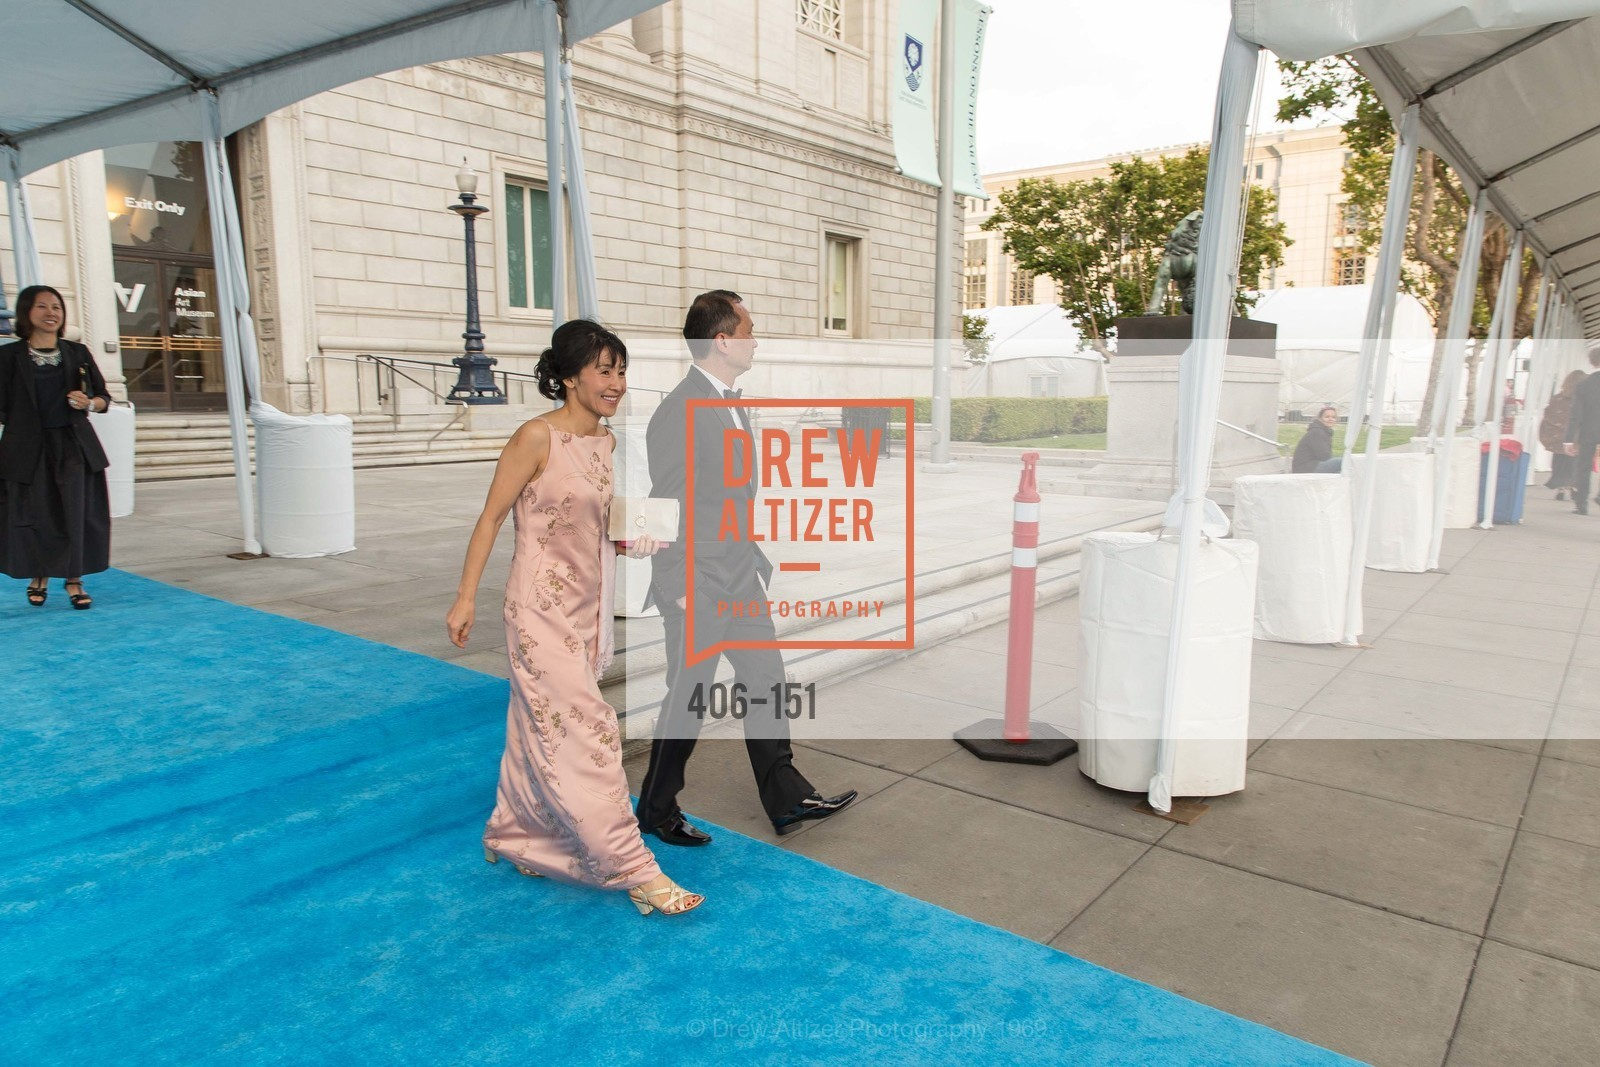 Extras, Asian Art Museum 28 Chinese Opening Night Gala, June 2nd, 2015, Photo,Drew Altizer, Drew Altizer Photography, full-service agency, private events, San Francisco photographer, photographer california